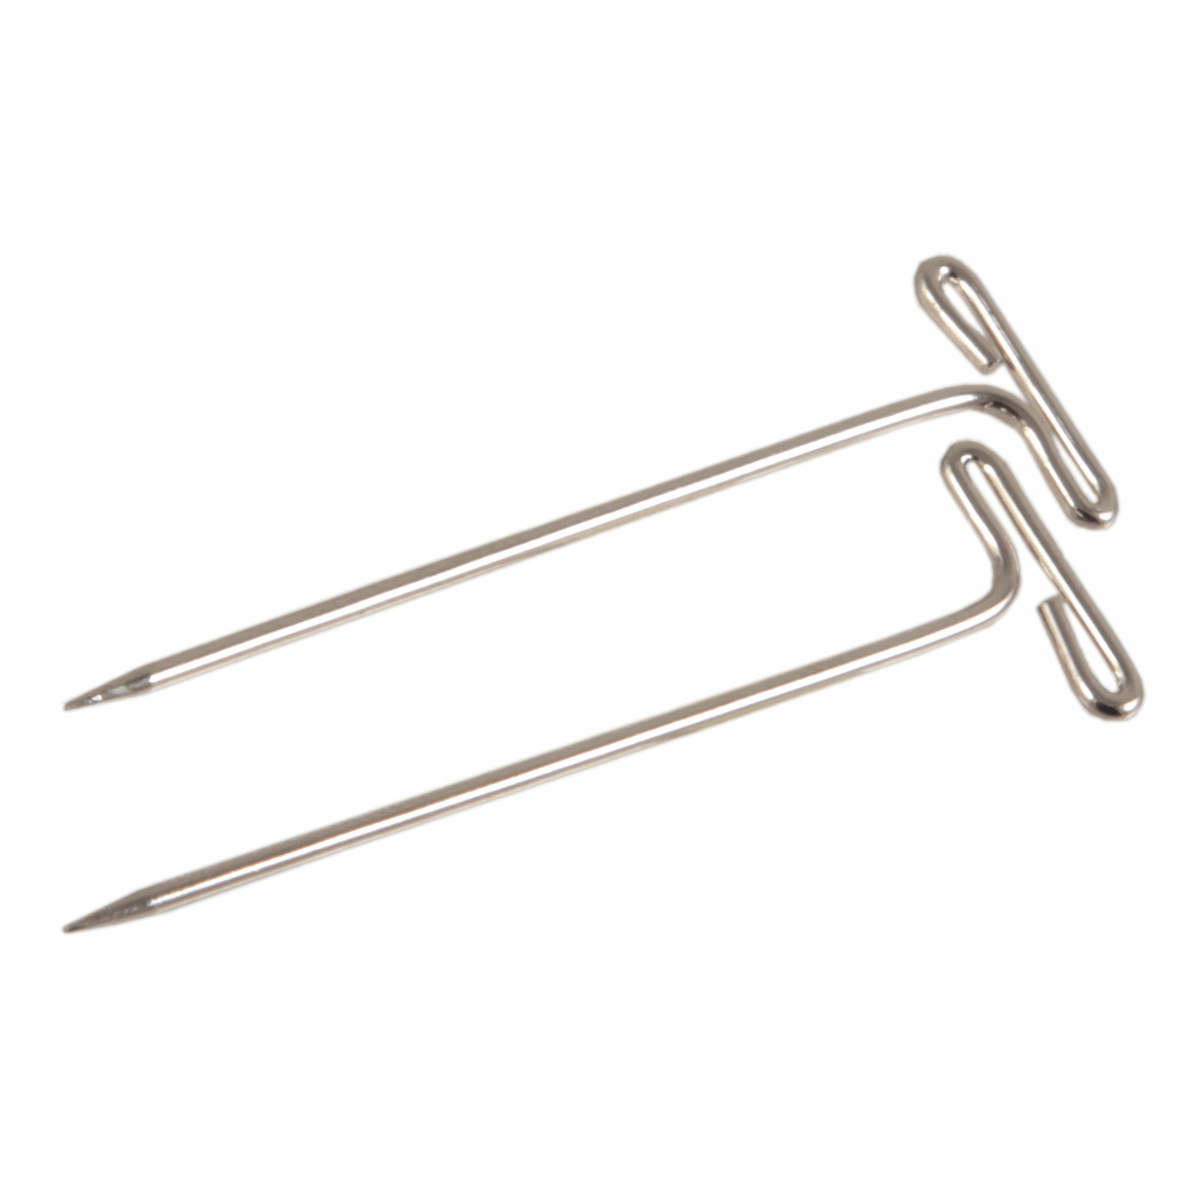 KnitPro T-Pins, 38mm, Pack of 50, Silver